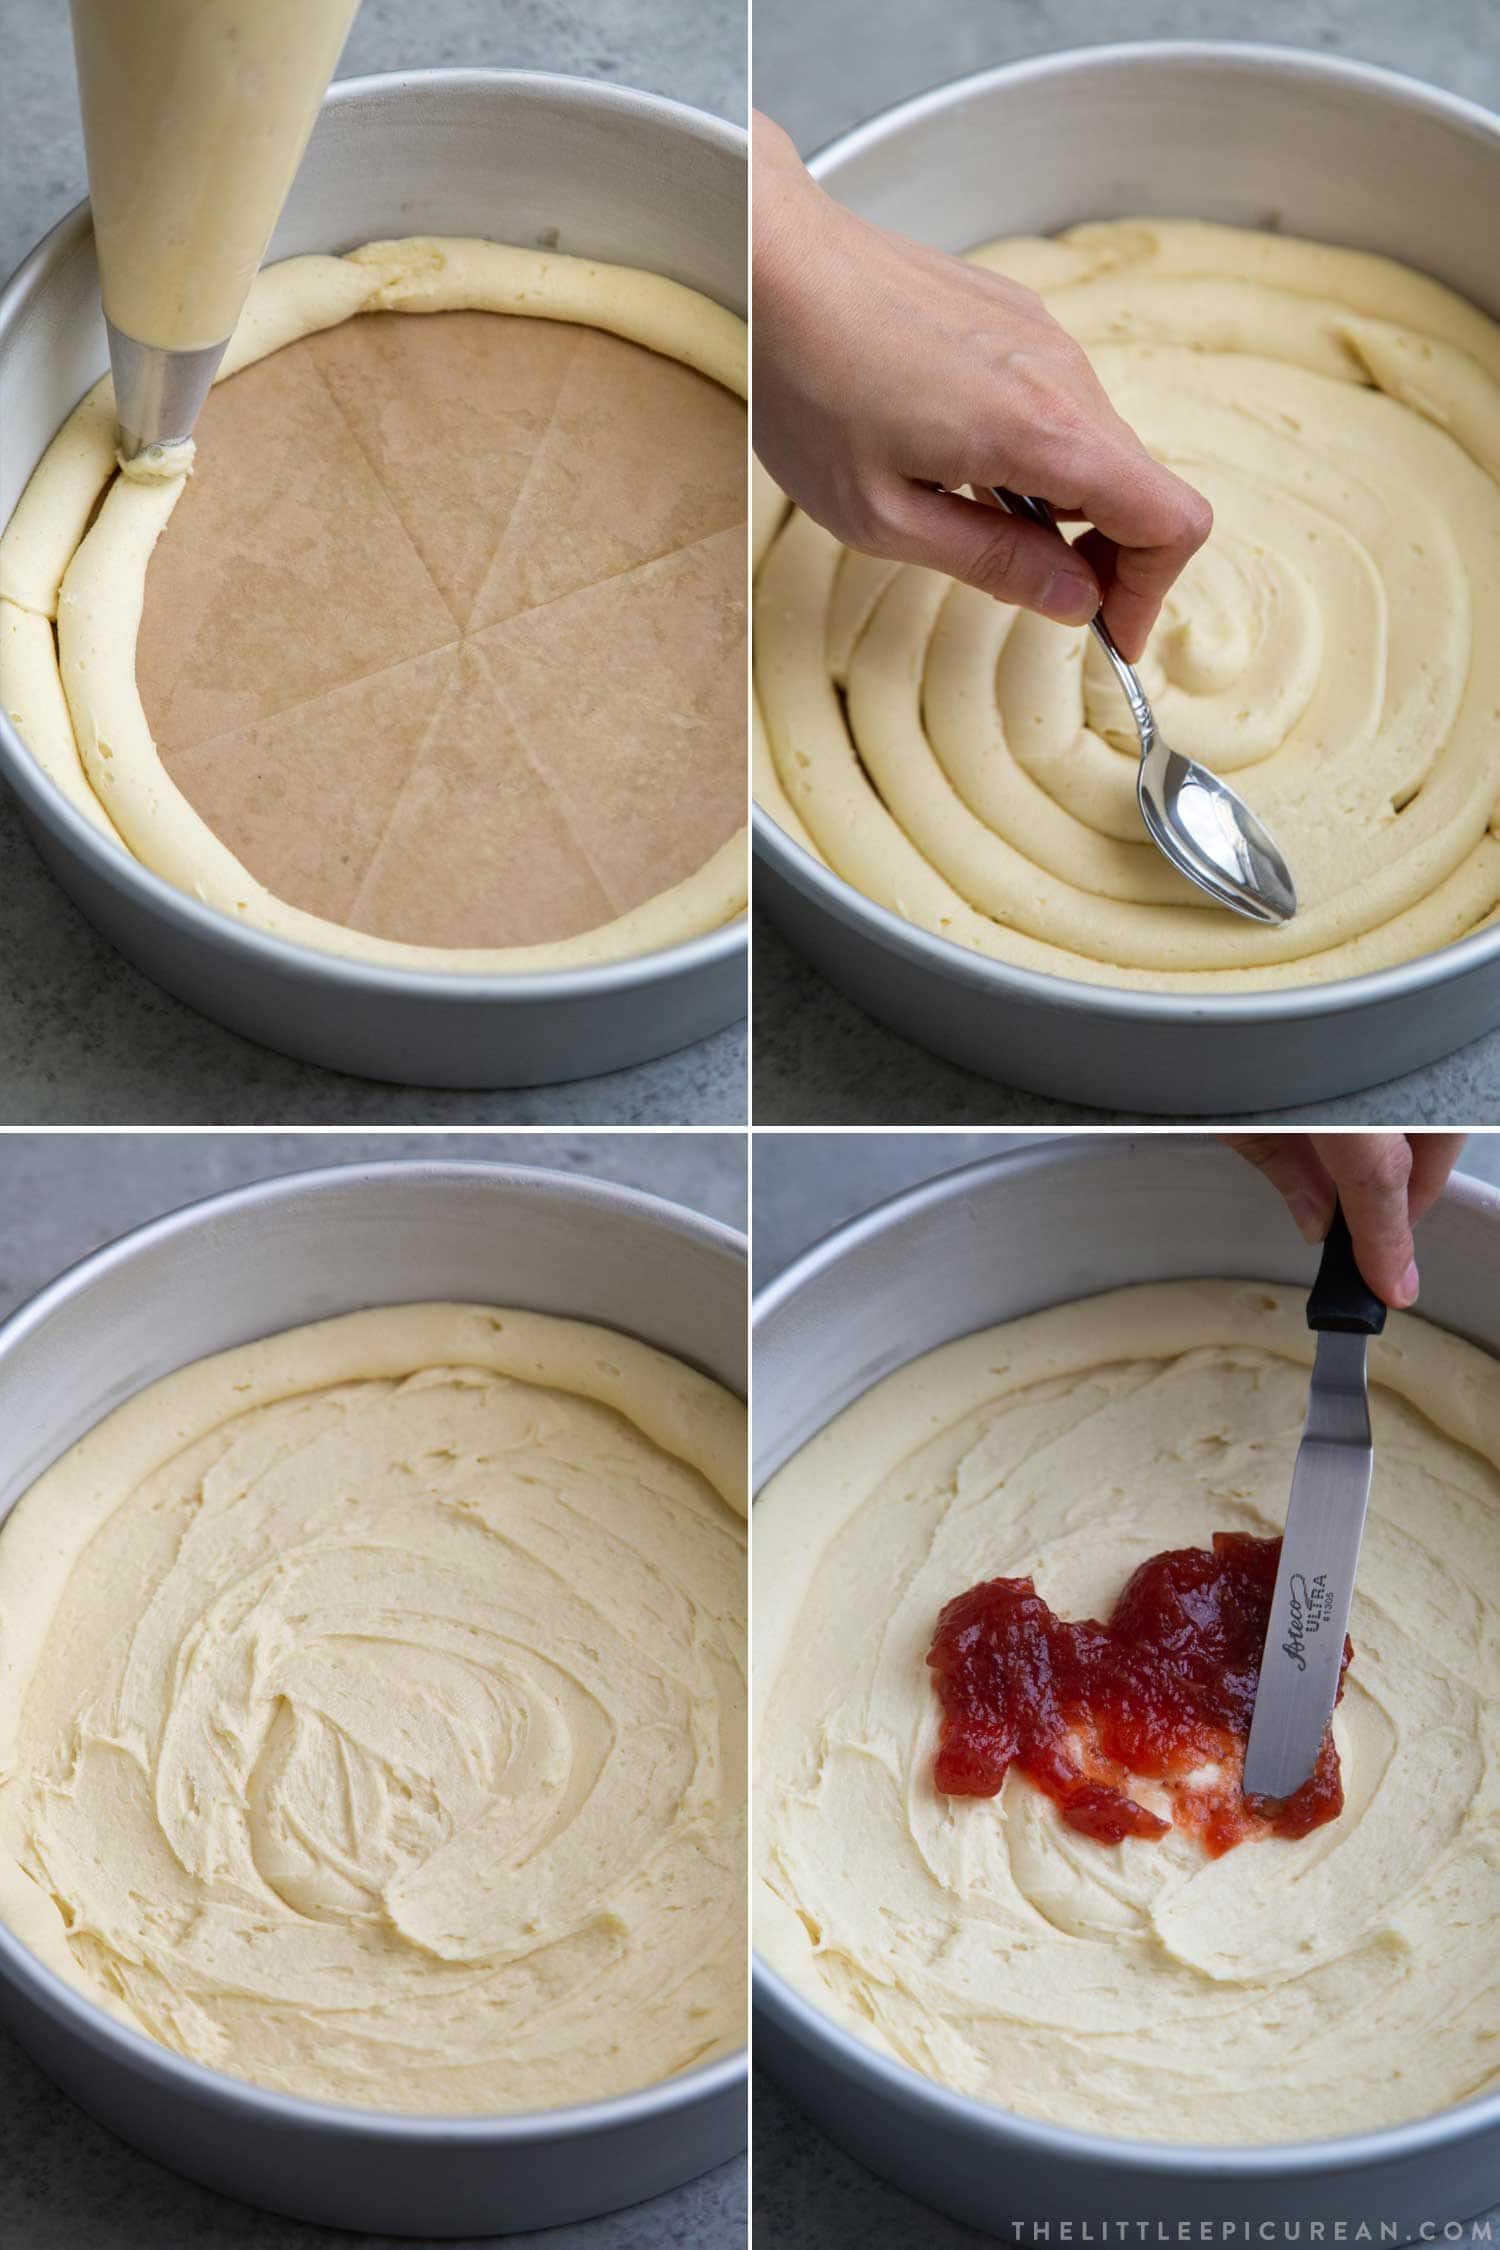 How to Make Basque Cake using piping bag